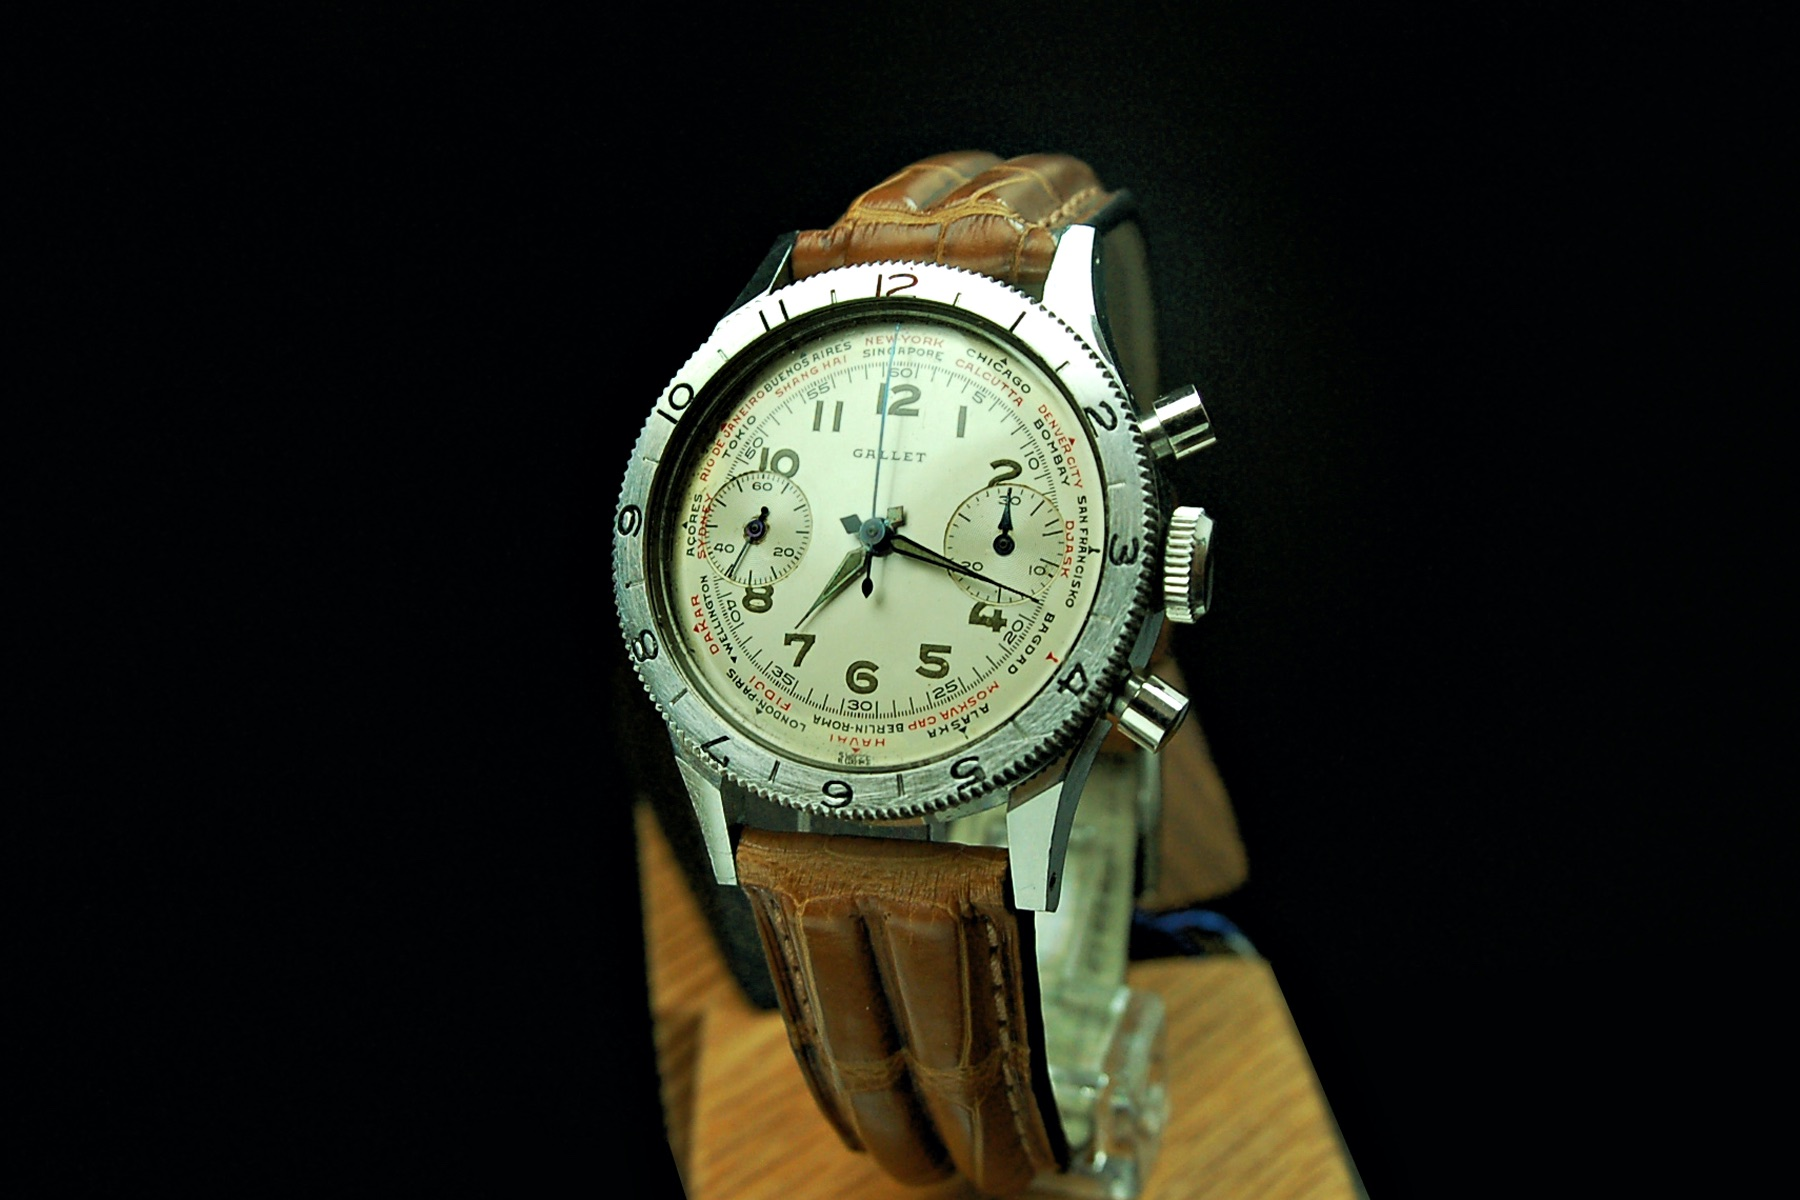 Vintage Corner Gallet Flying Officer